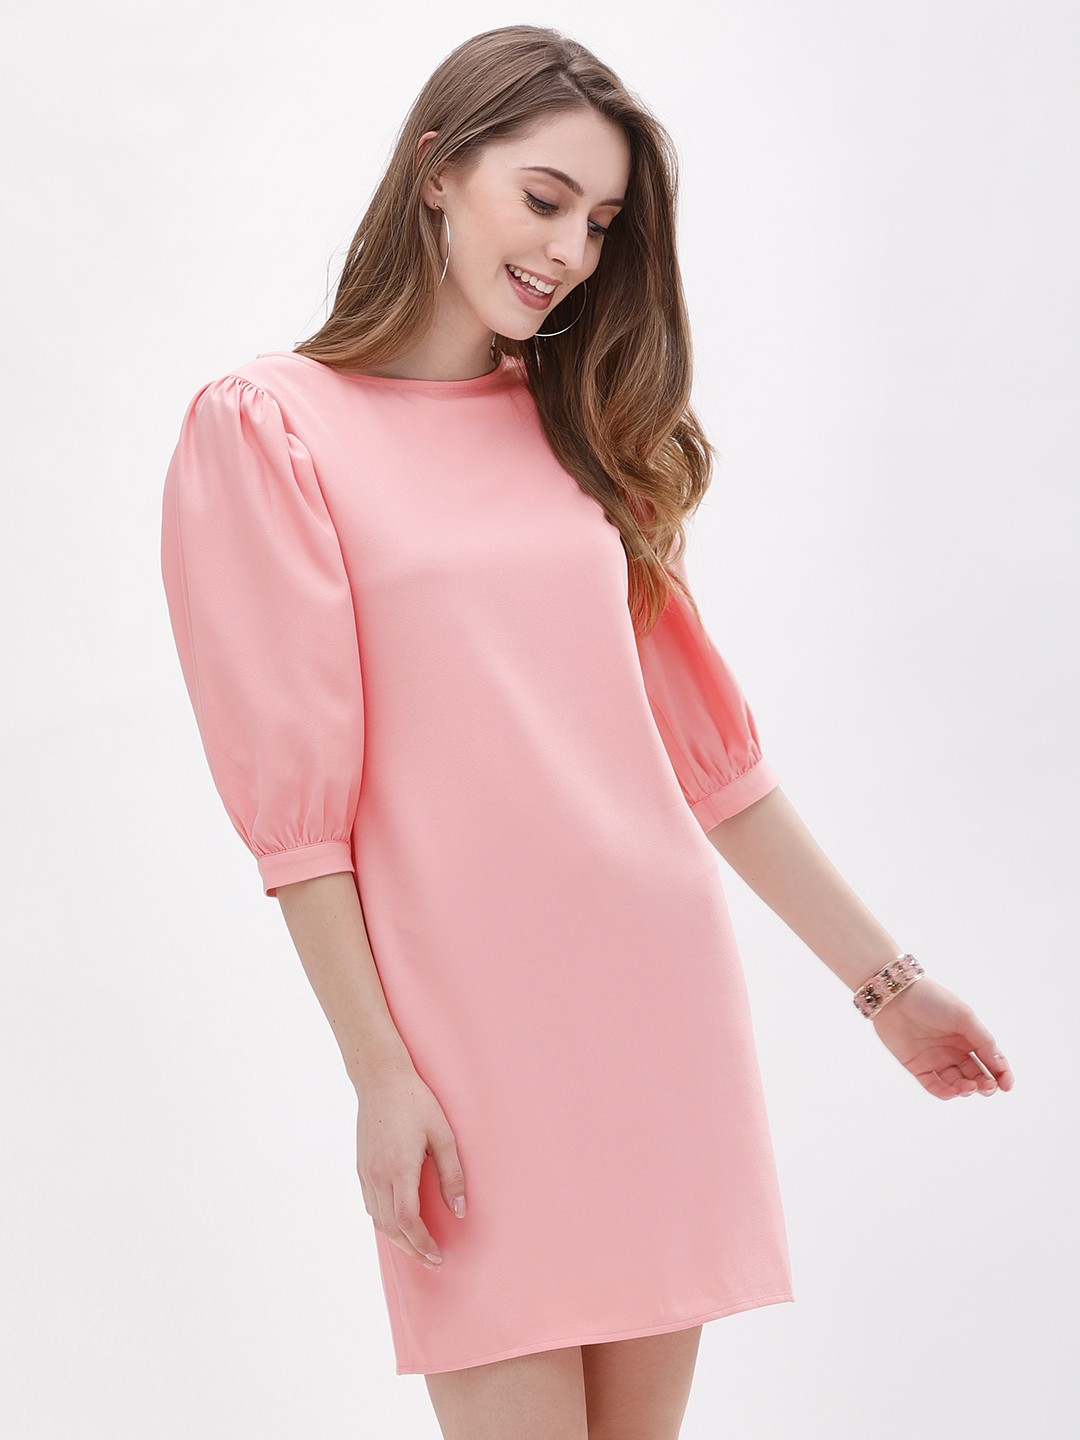 Origami Lily Pink Puff Sleeve Mini Dress 1